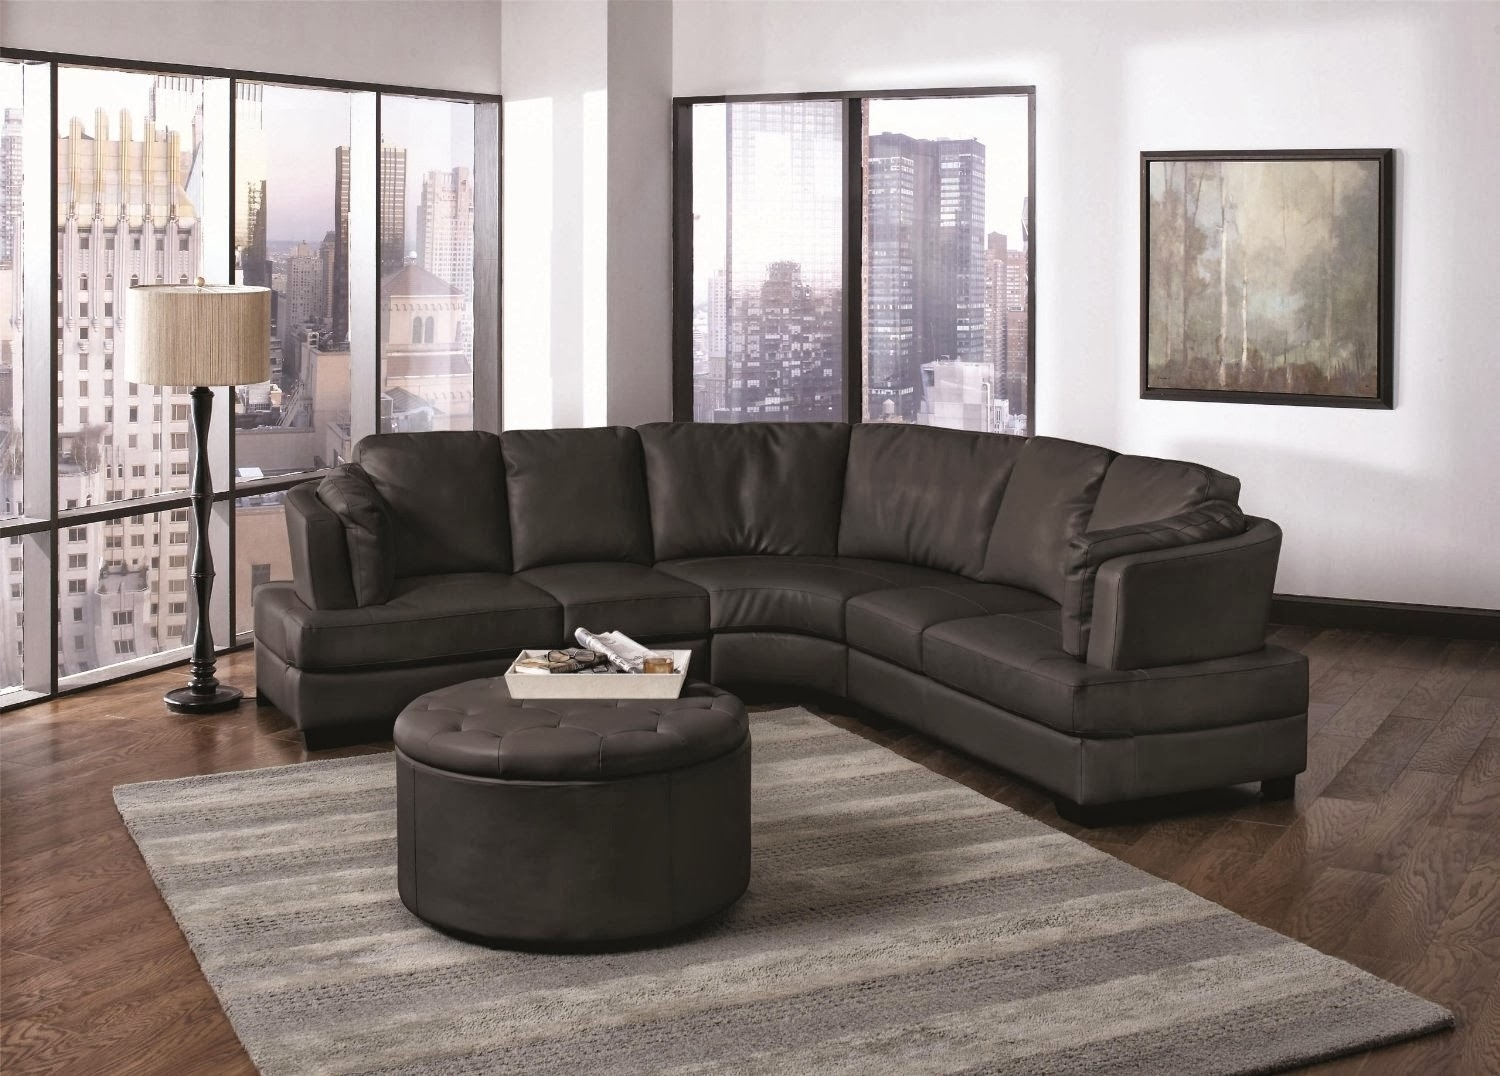 Room And Board Sectional Sofas – Hotelsbacau In Room And Board Sectional Sofas (Image 8 of 10)